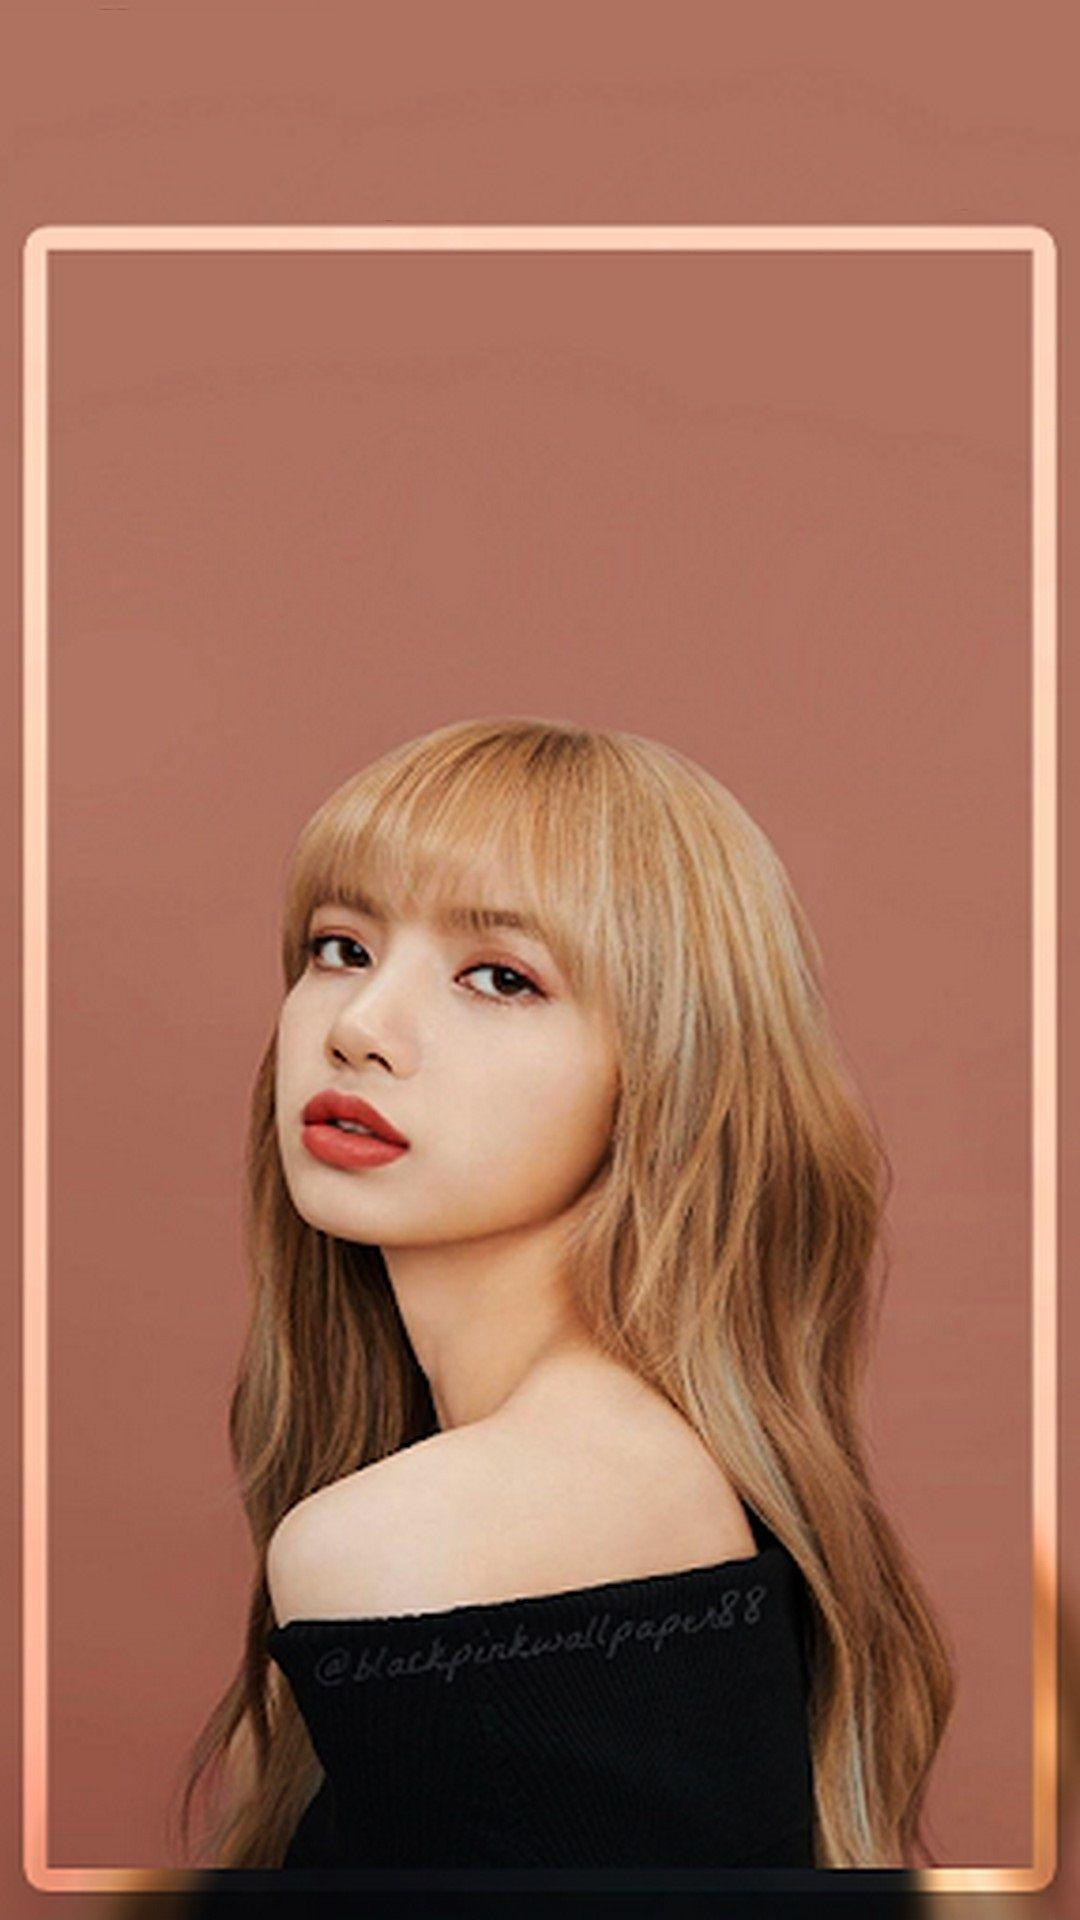 Lisa Blackpink iPhone X Wallpapers